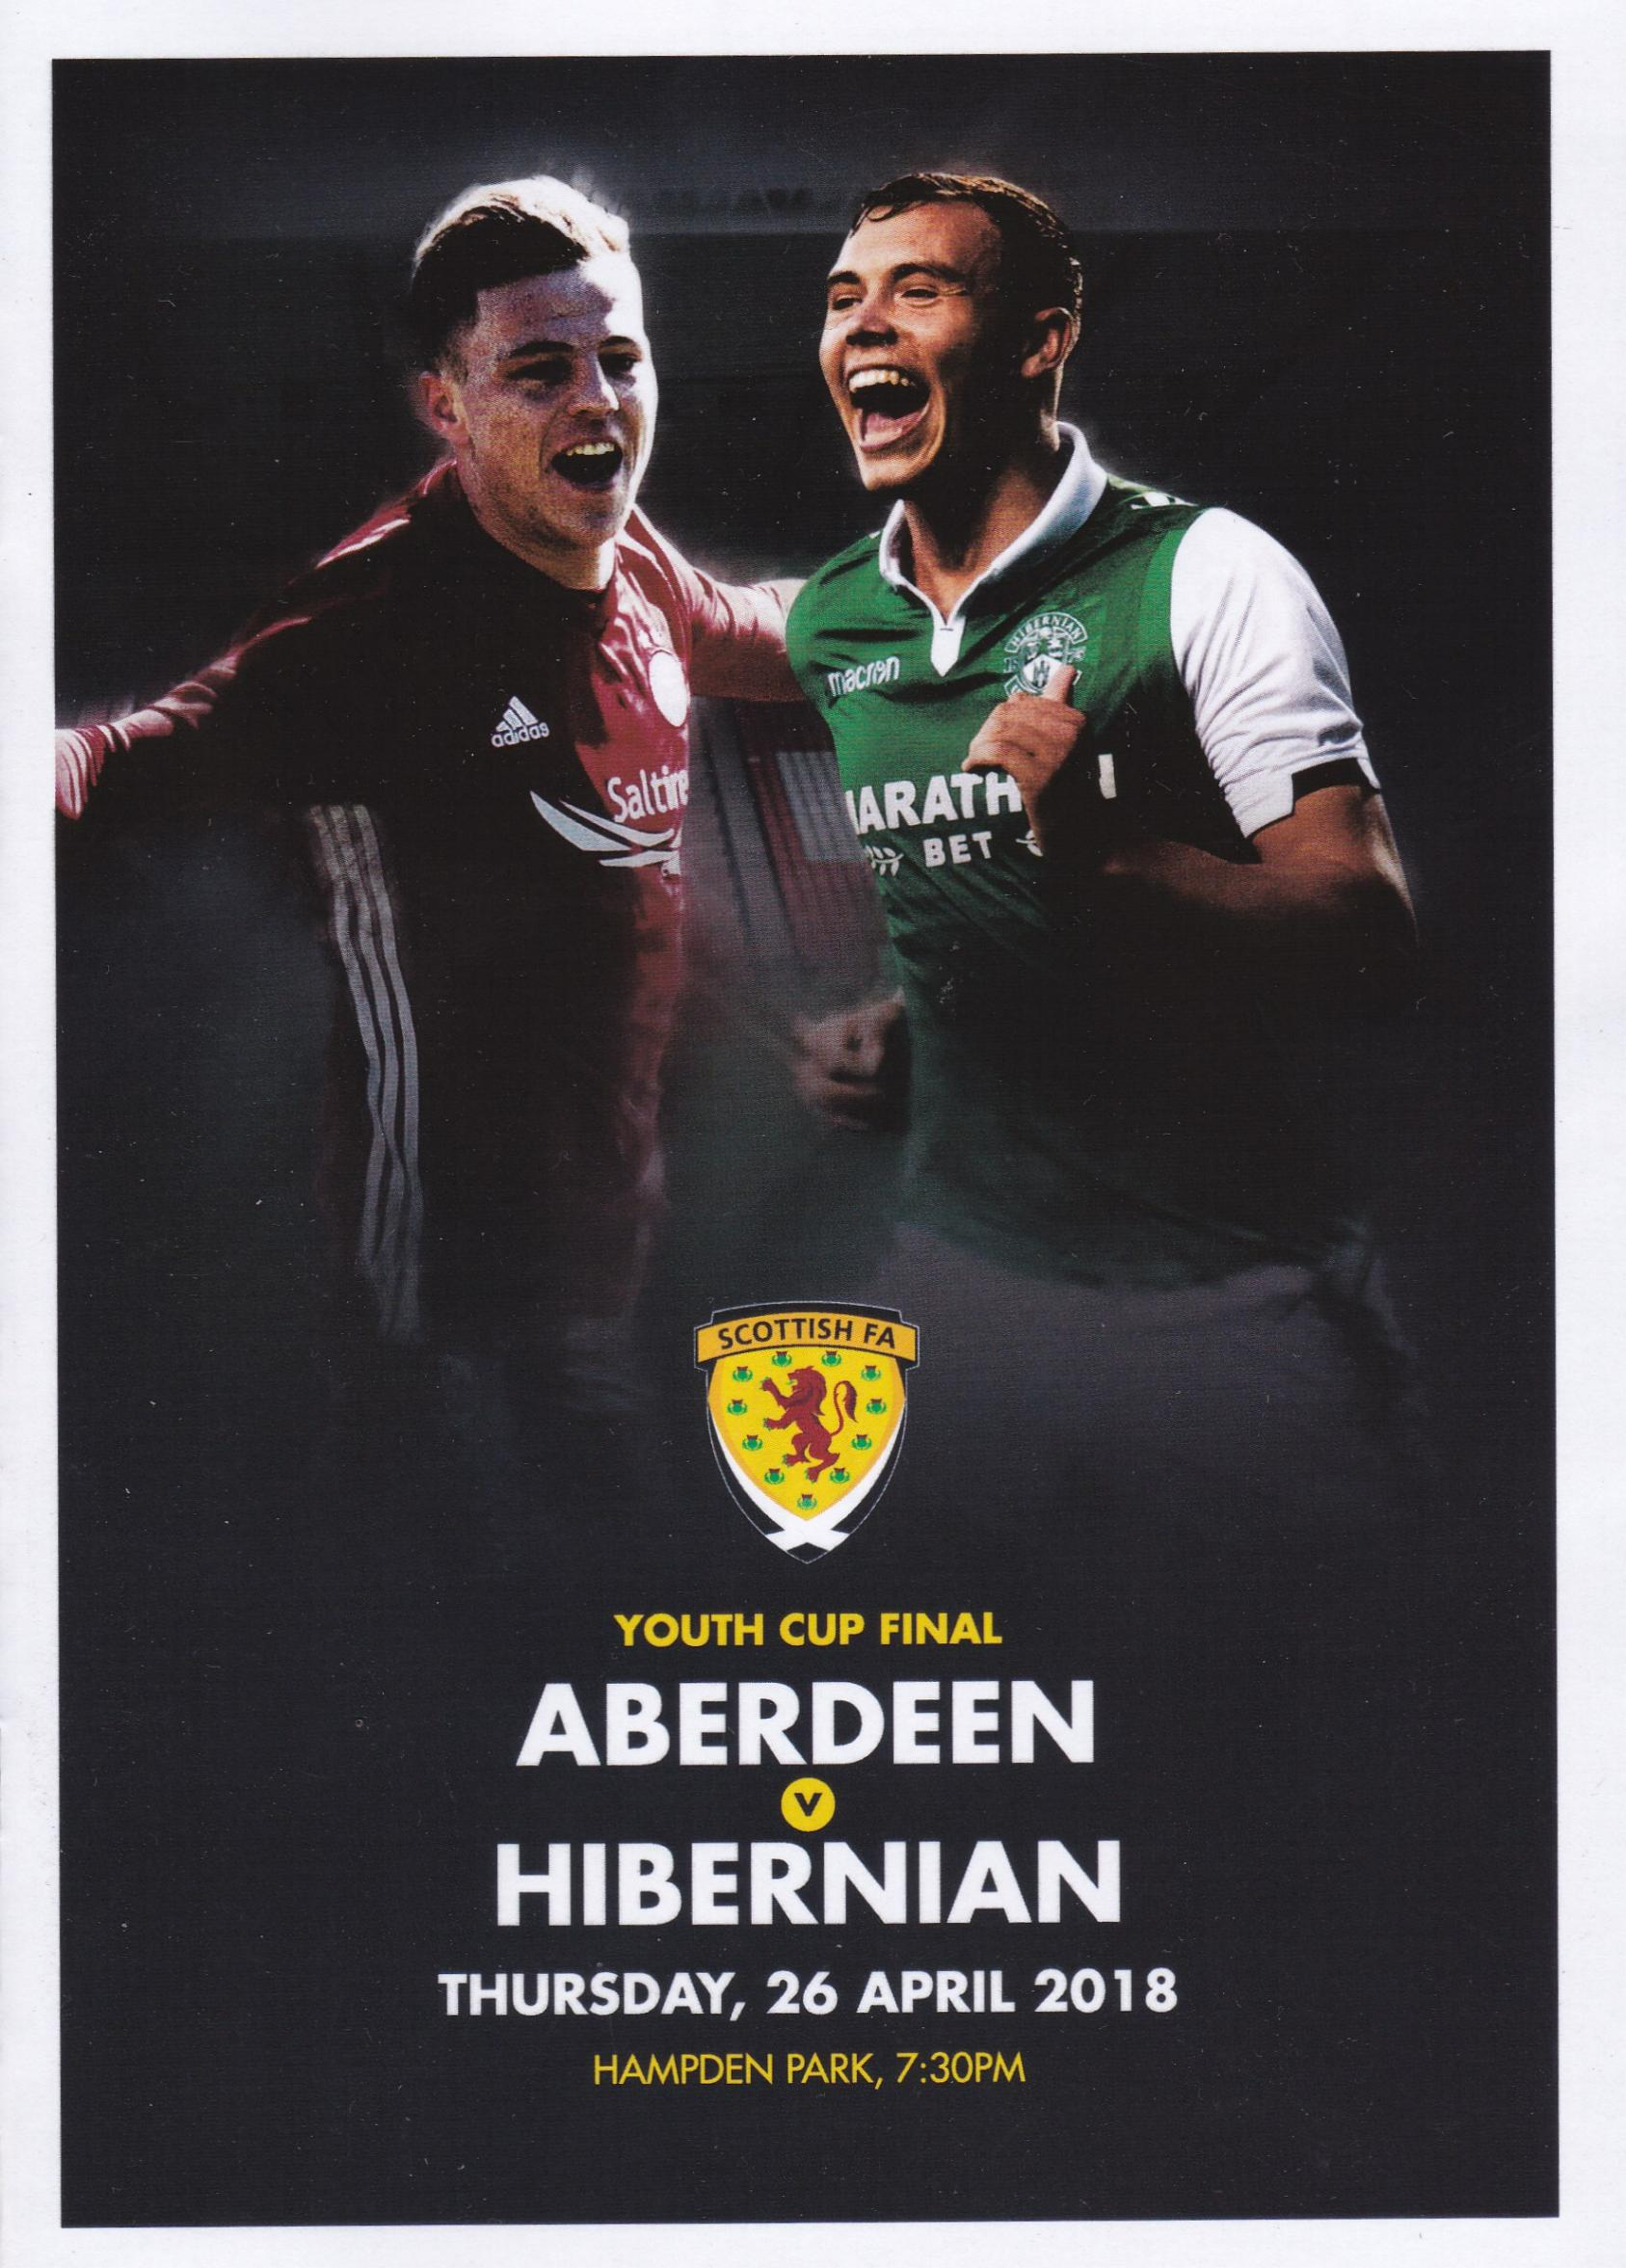 2018 SCOTTISH YOUTH CUP FINAL - ABERDEEN v HIBERNIAN